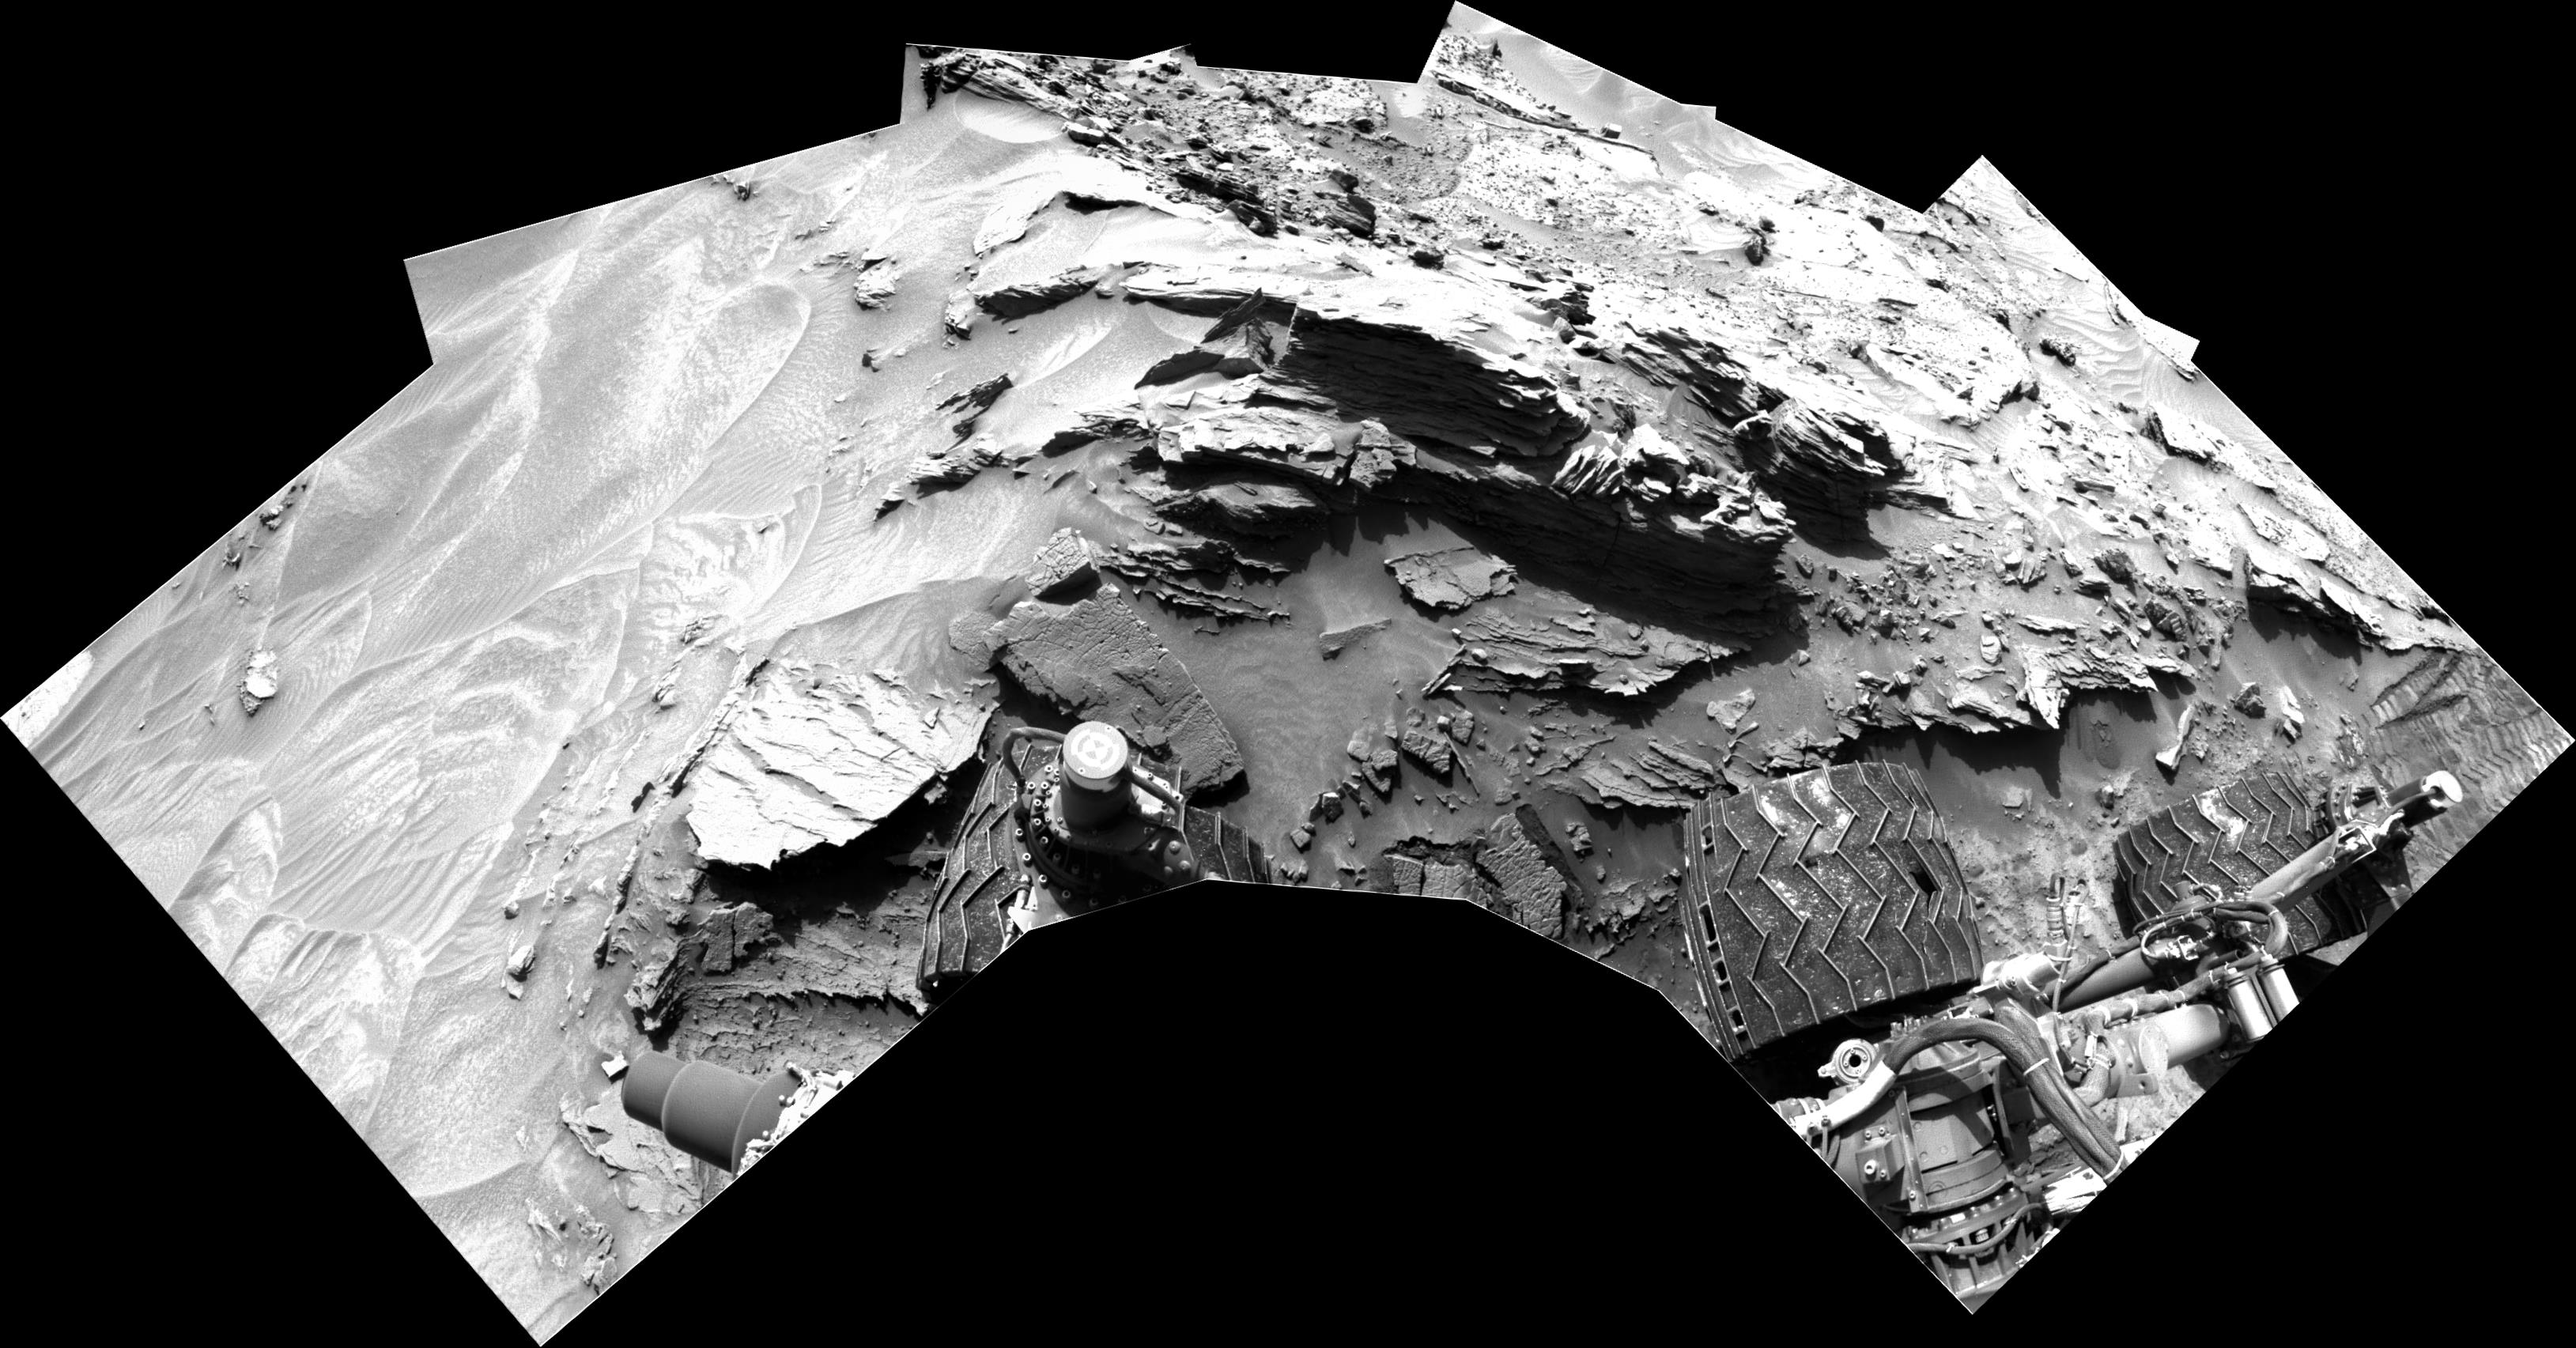 panoramic curiosity rover view b&w 2 - sol 1352 - was life on mars